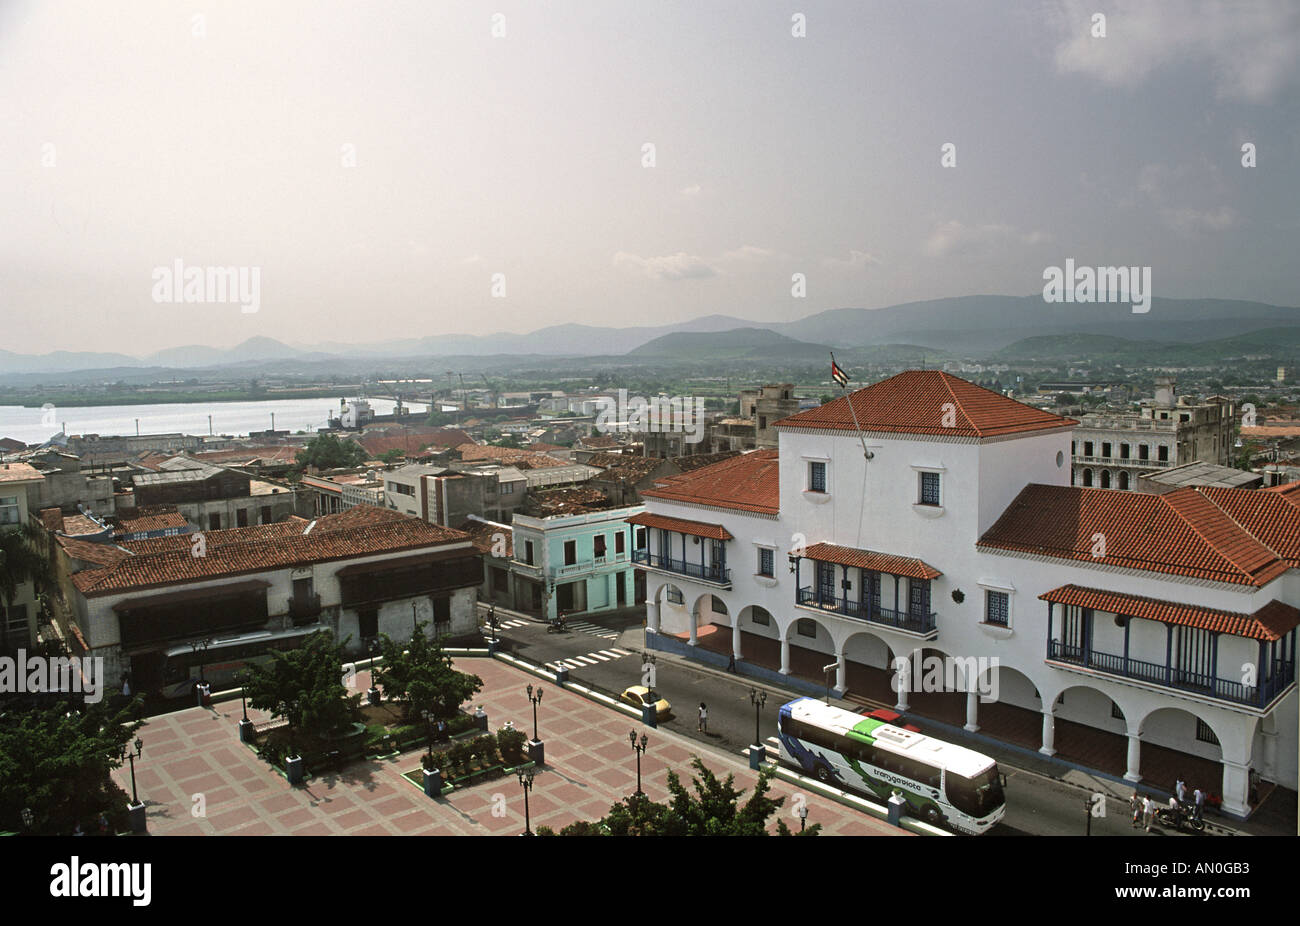 Town Hall and symbol of Santiago de Cuba Fidel Castro first addressed the people from here Parque de Cespedes Santiago CUBA - Stock Image